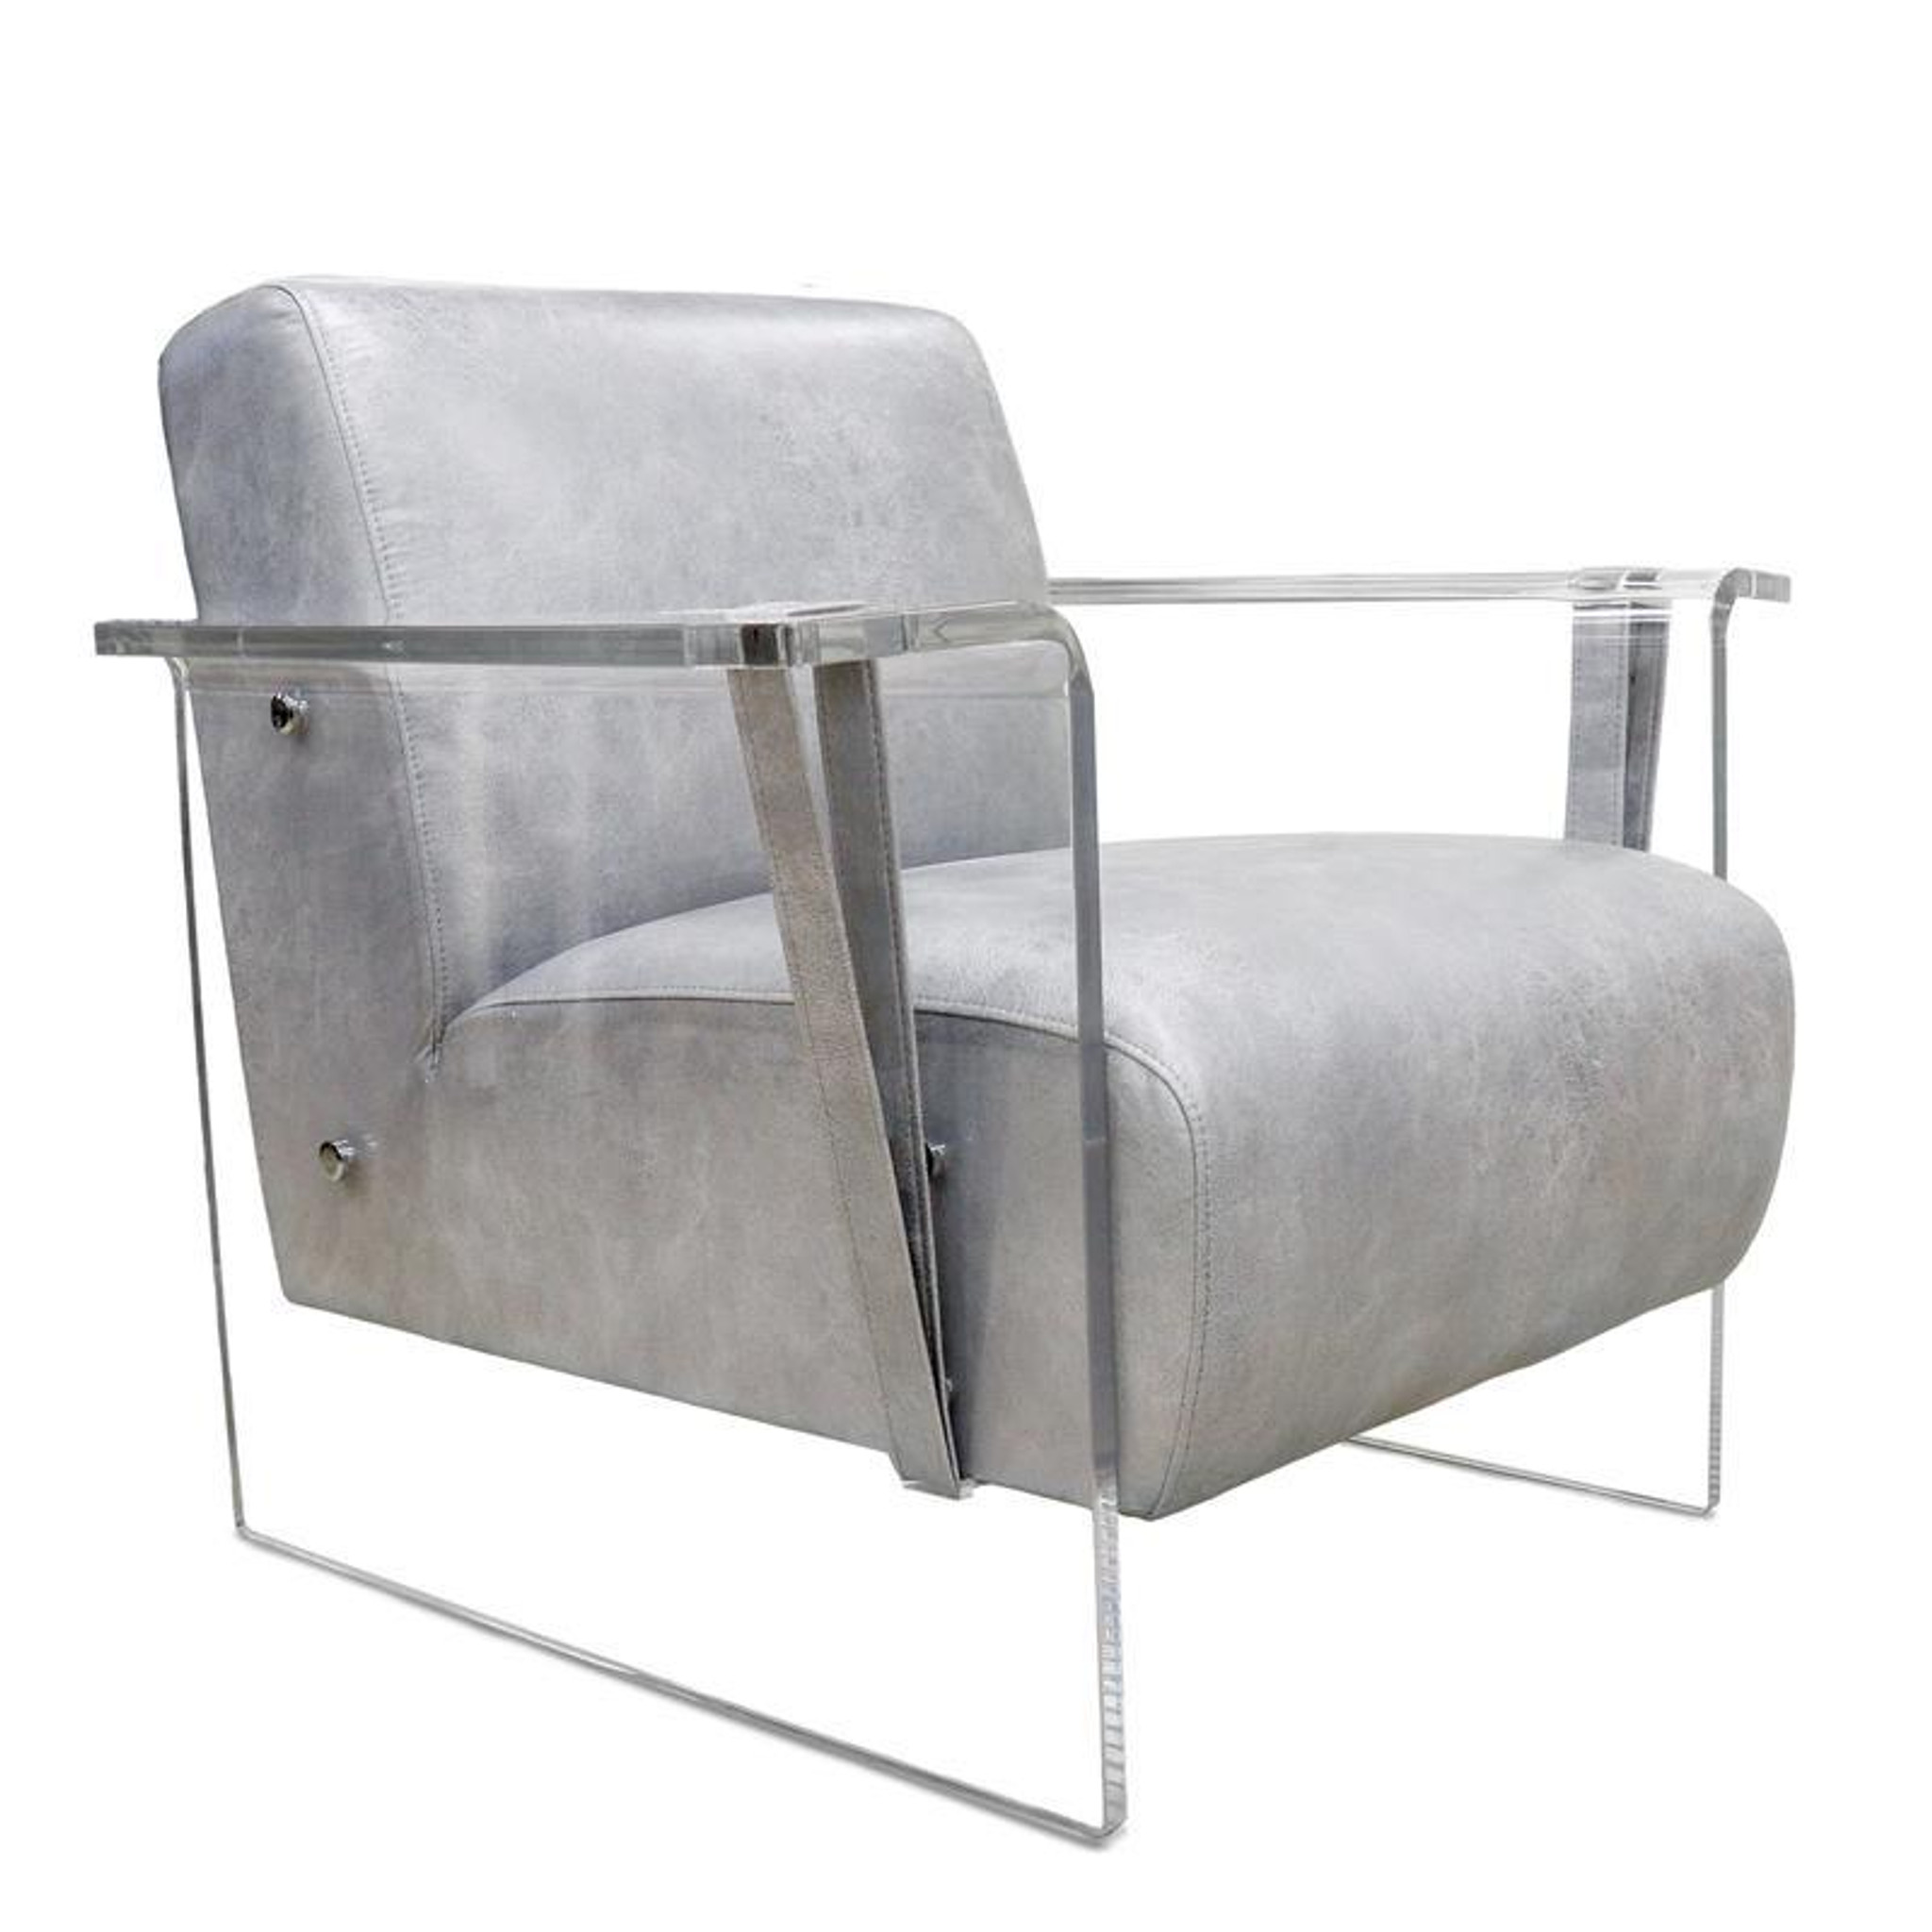 contemporary clear acrylic armchair in dark grey leather with lucite frame and legs